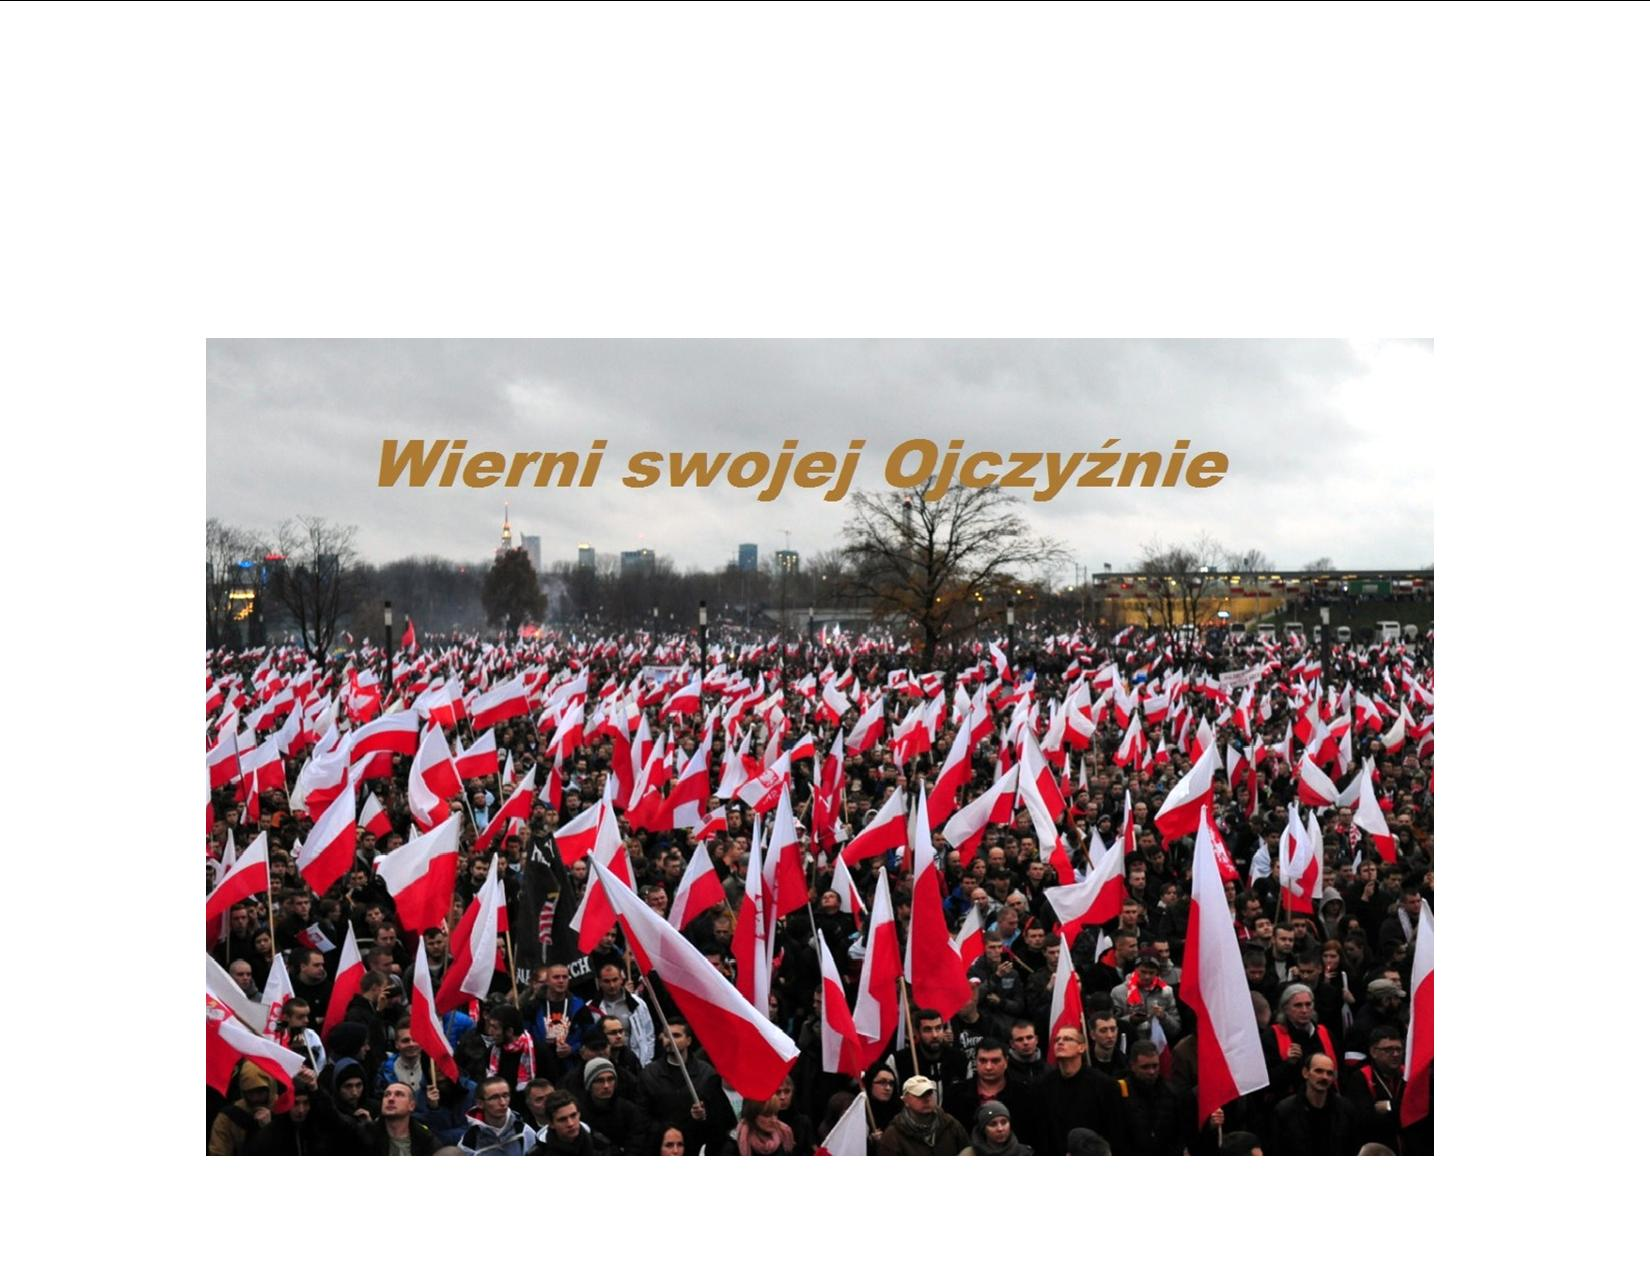 Warsaw, Poland's Independence Day, Nov. 11, 2018